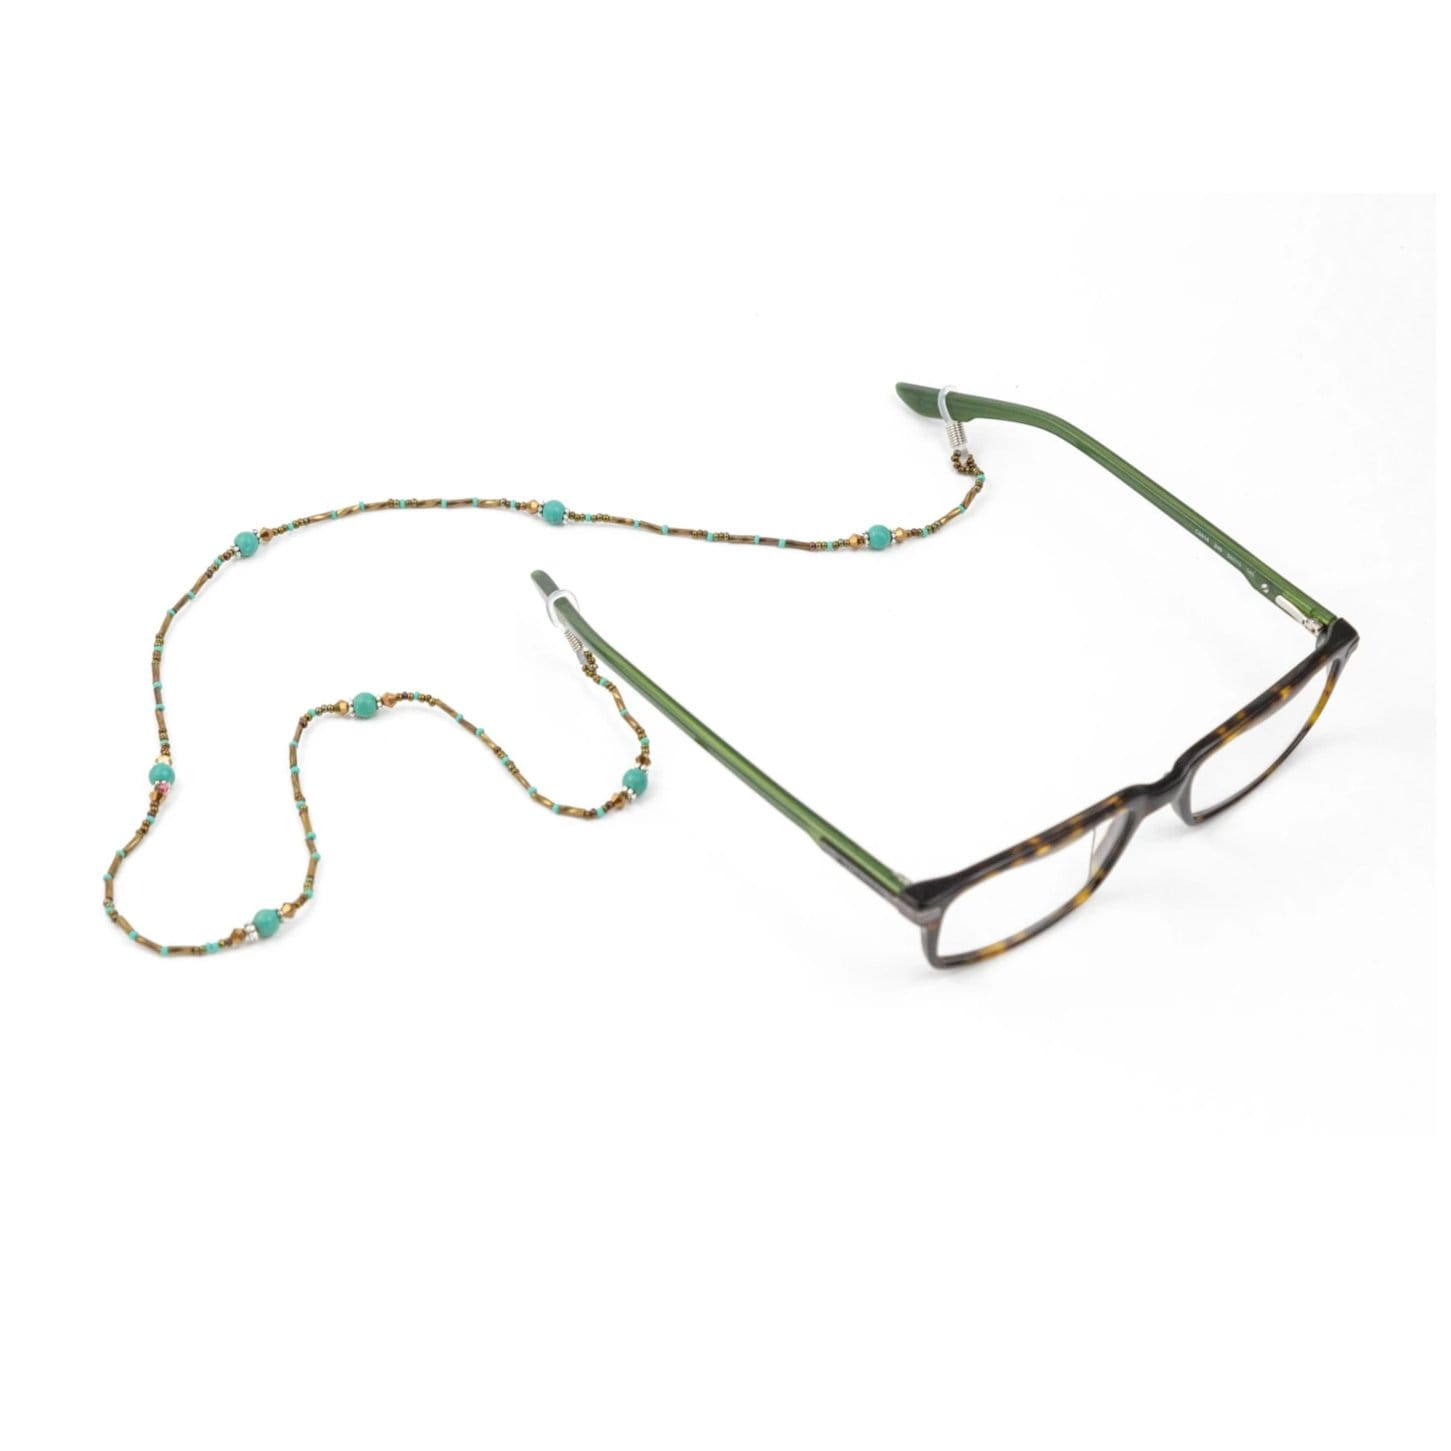 Fair Trade Eyeglass Holder Turquoise Beads